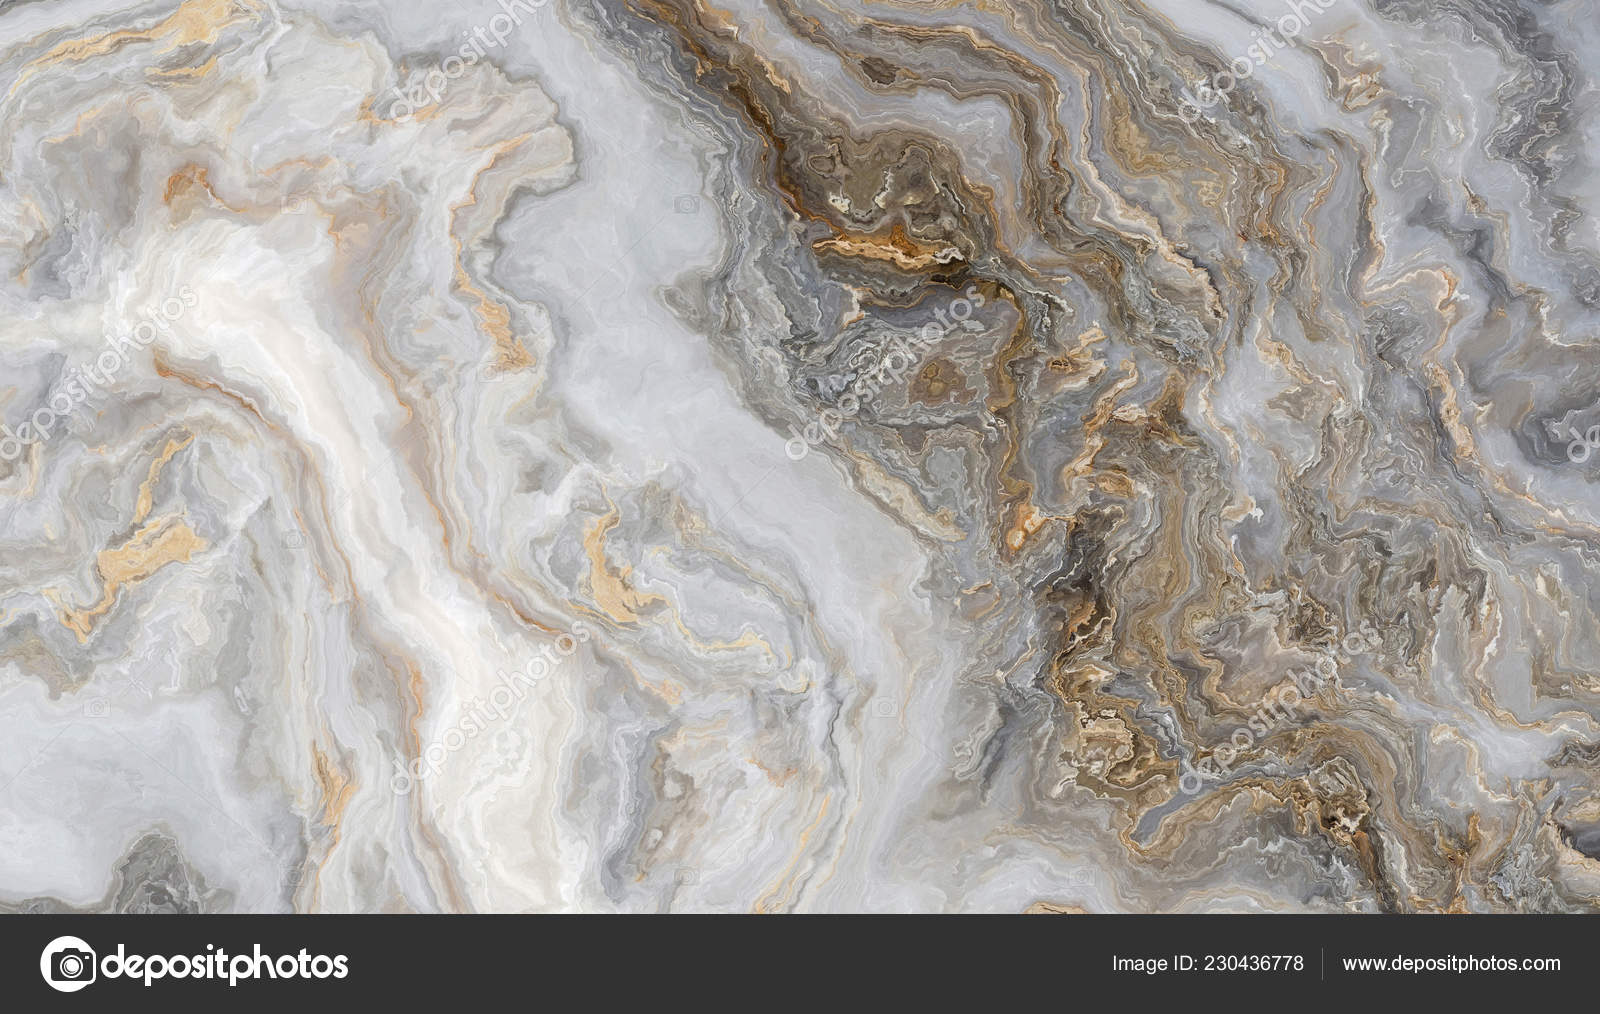 Background White Marble With Gold Veins White Marble Pattern Curly Grey Gold Veins Abstract Texture Background Stock Photo C Aregfly 230436778